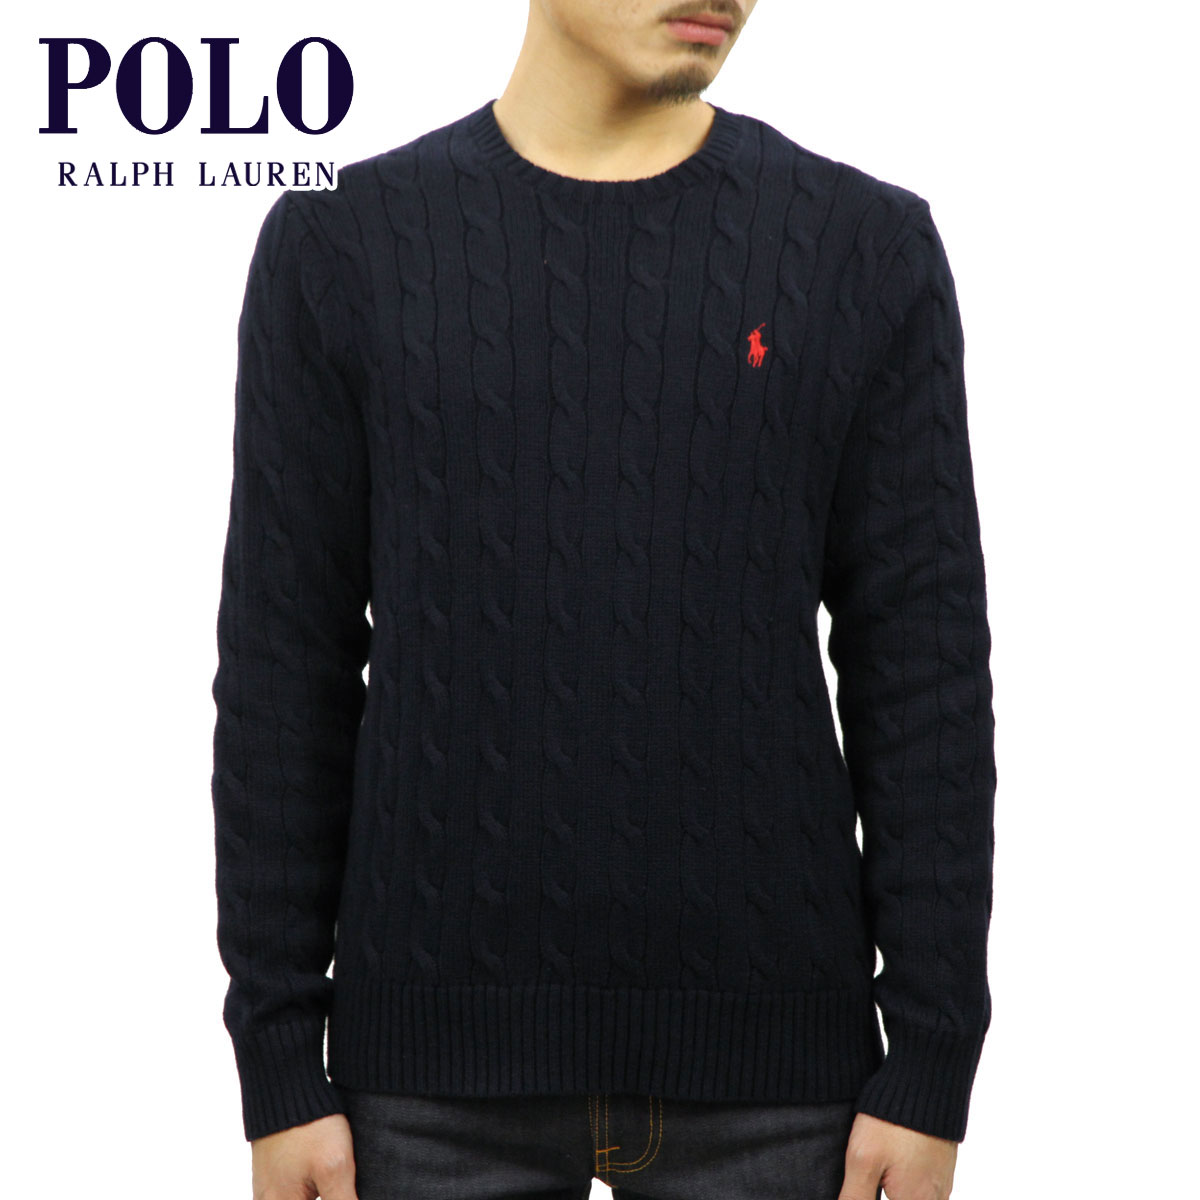 71c8302beaed Polo Ralph Lauren POLO RALPH LAUREN genuine men s sweater CABLE-KNIT COTTON  SWEATER